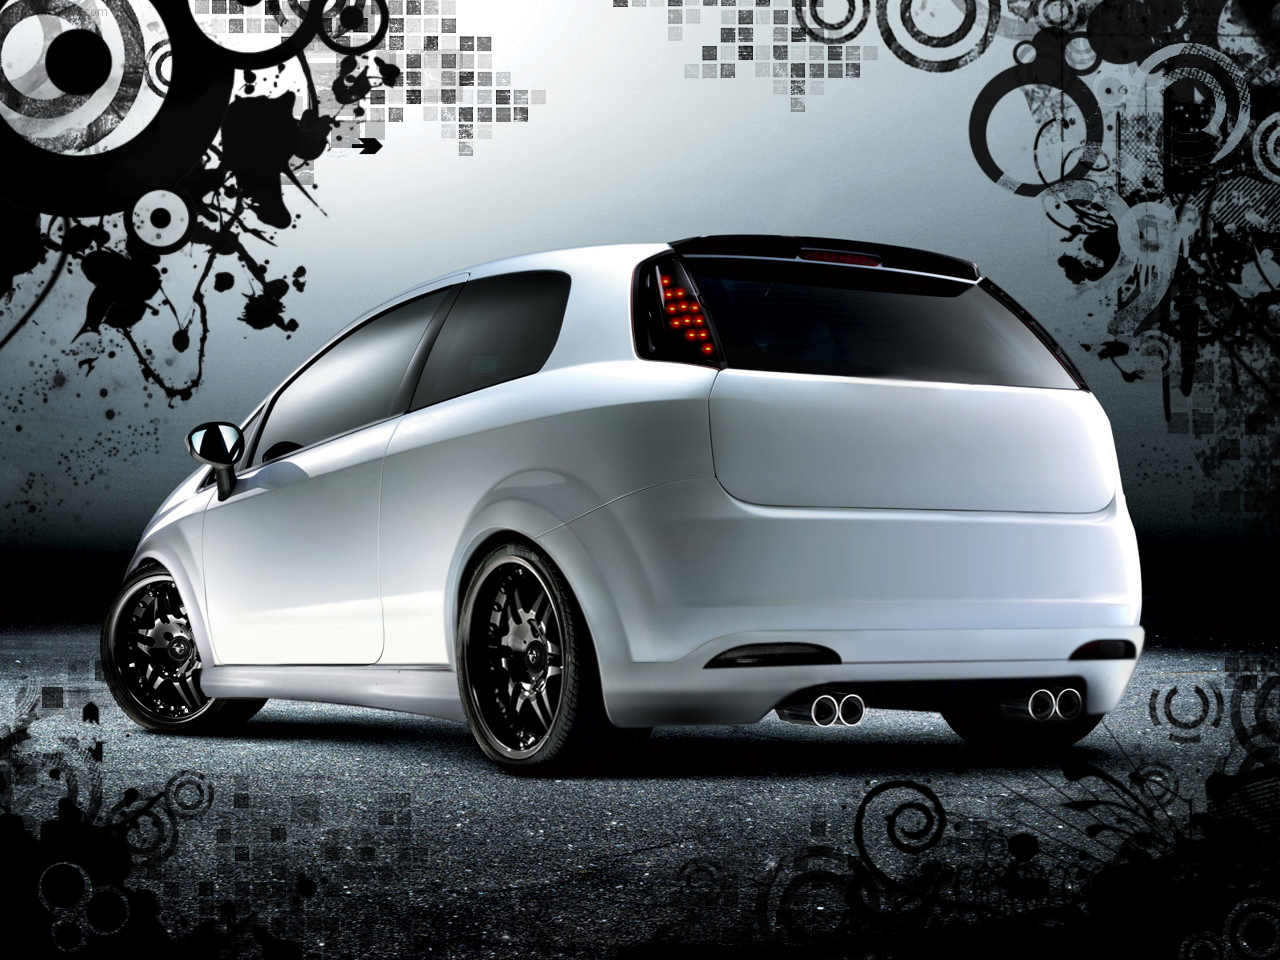 Photos Of Fiat Grande Punto Abarth Photo Tuning Fiat Grande Punto Abarth 06 Jpg Gr8autophoto Com